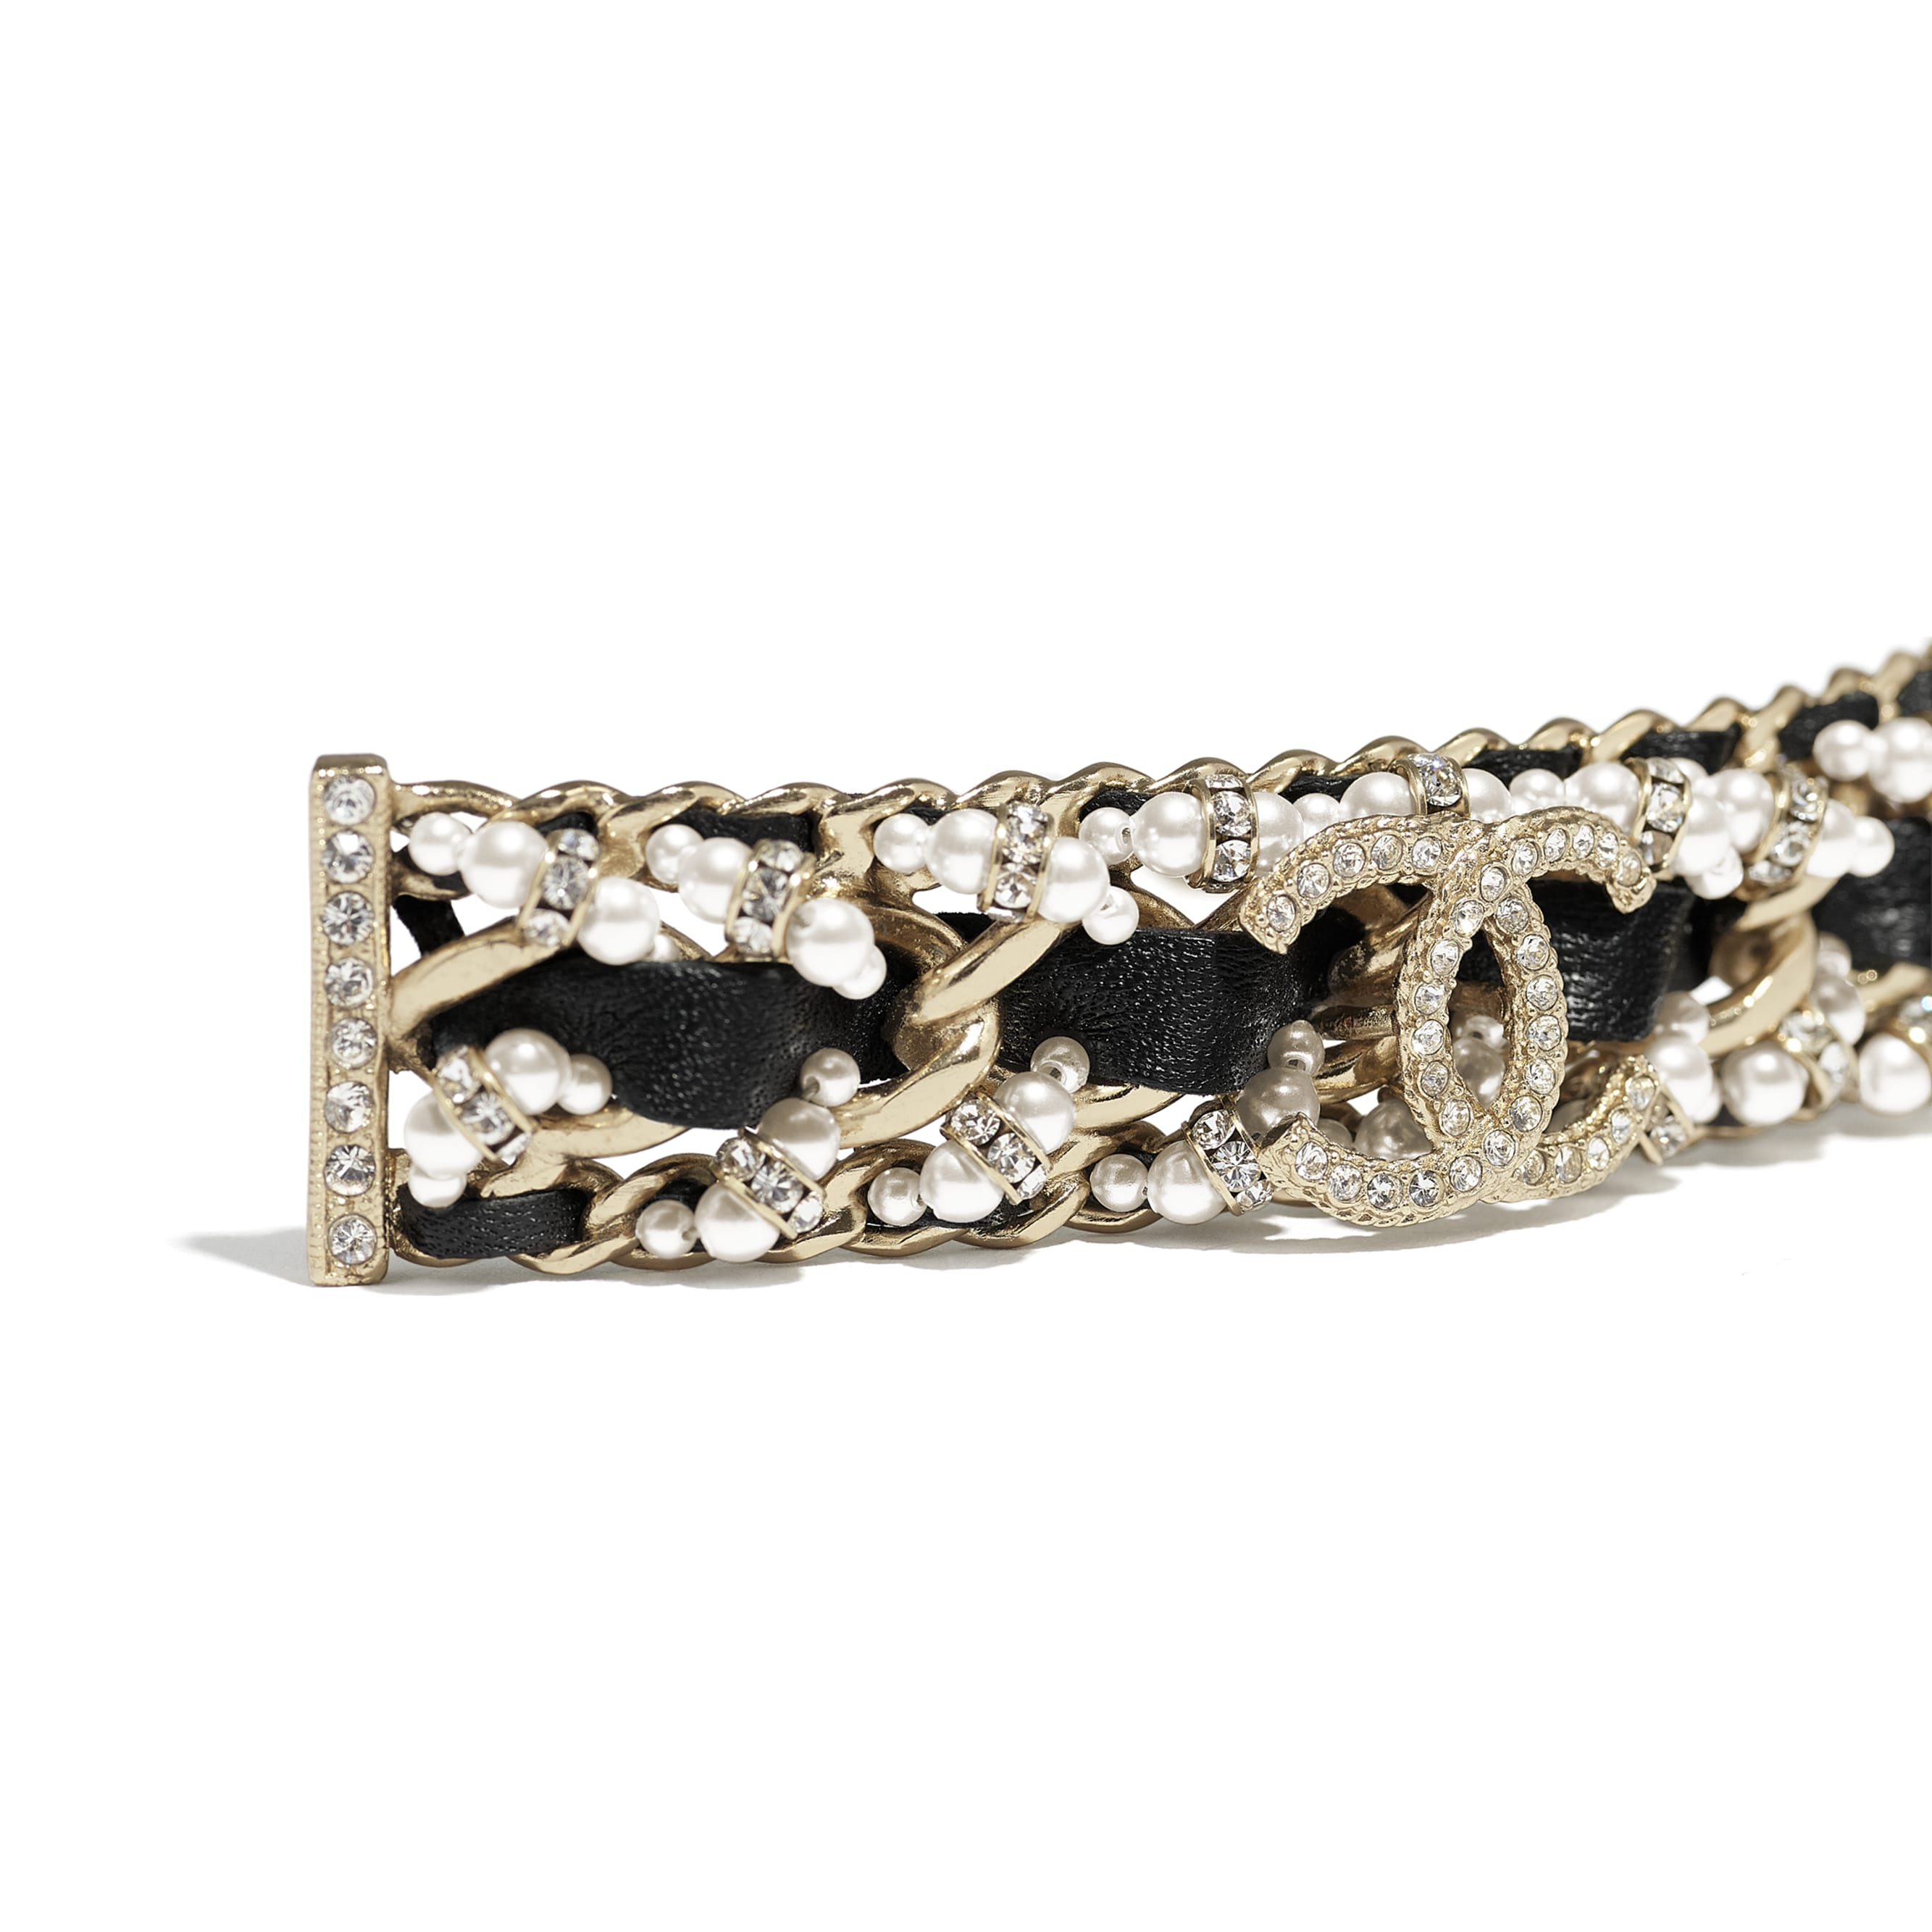 Hair Clip - Gold, Black, Pearly White & Crystal - Metal, Calfskin, Glass Pearls & Strass - CHANEL - Other view - see standard sized version